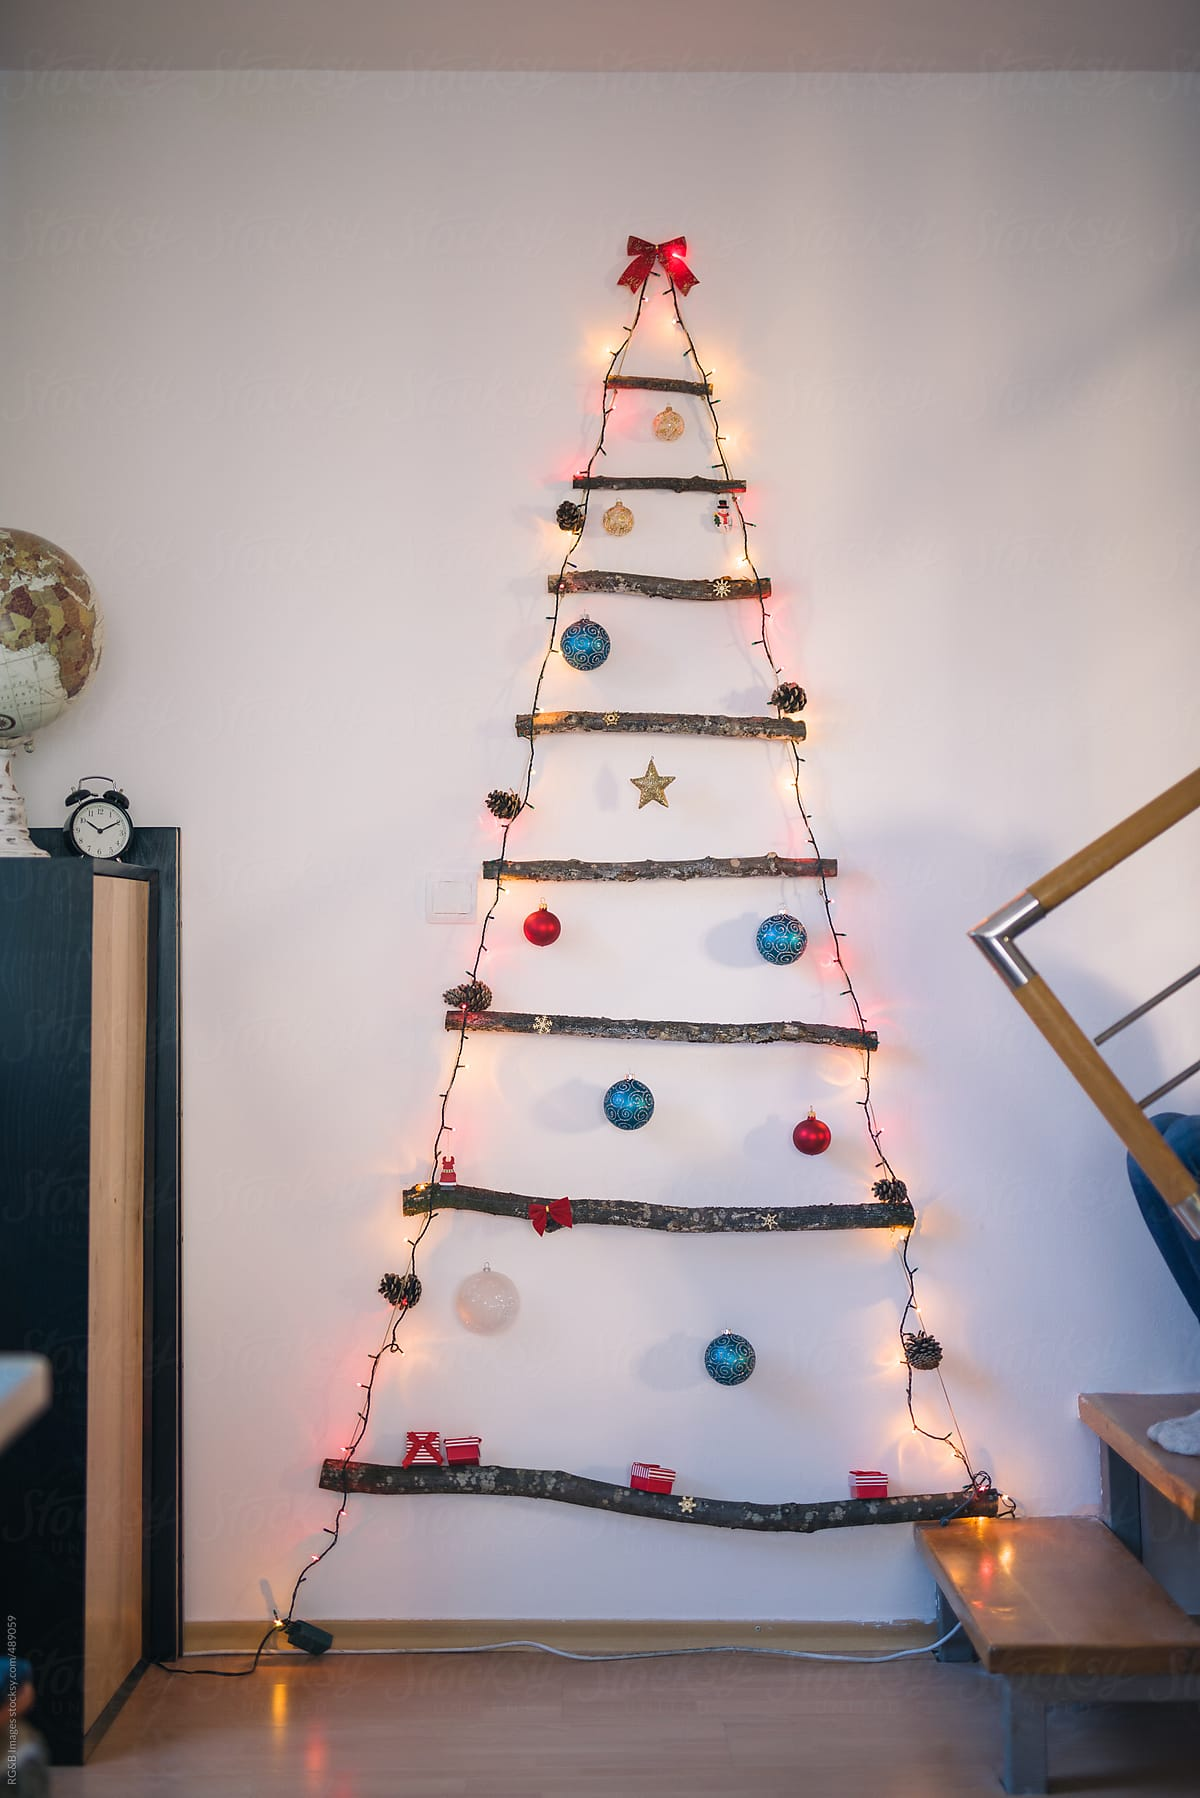 Stock Photo Alternative Wooden Christmas Tree With Glowing Lights